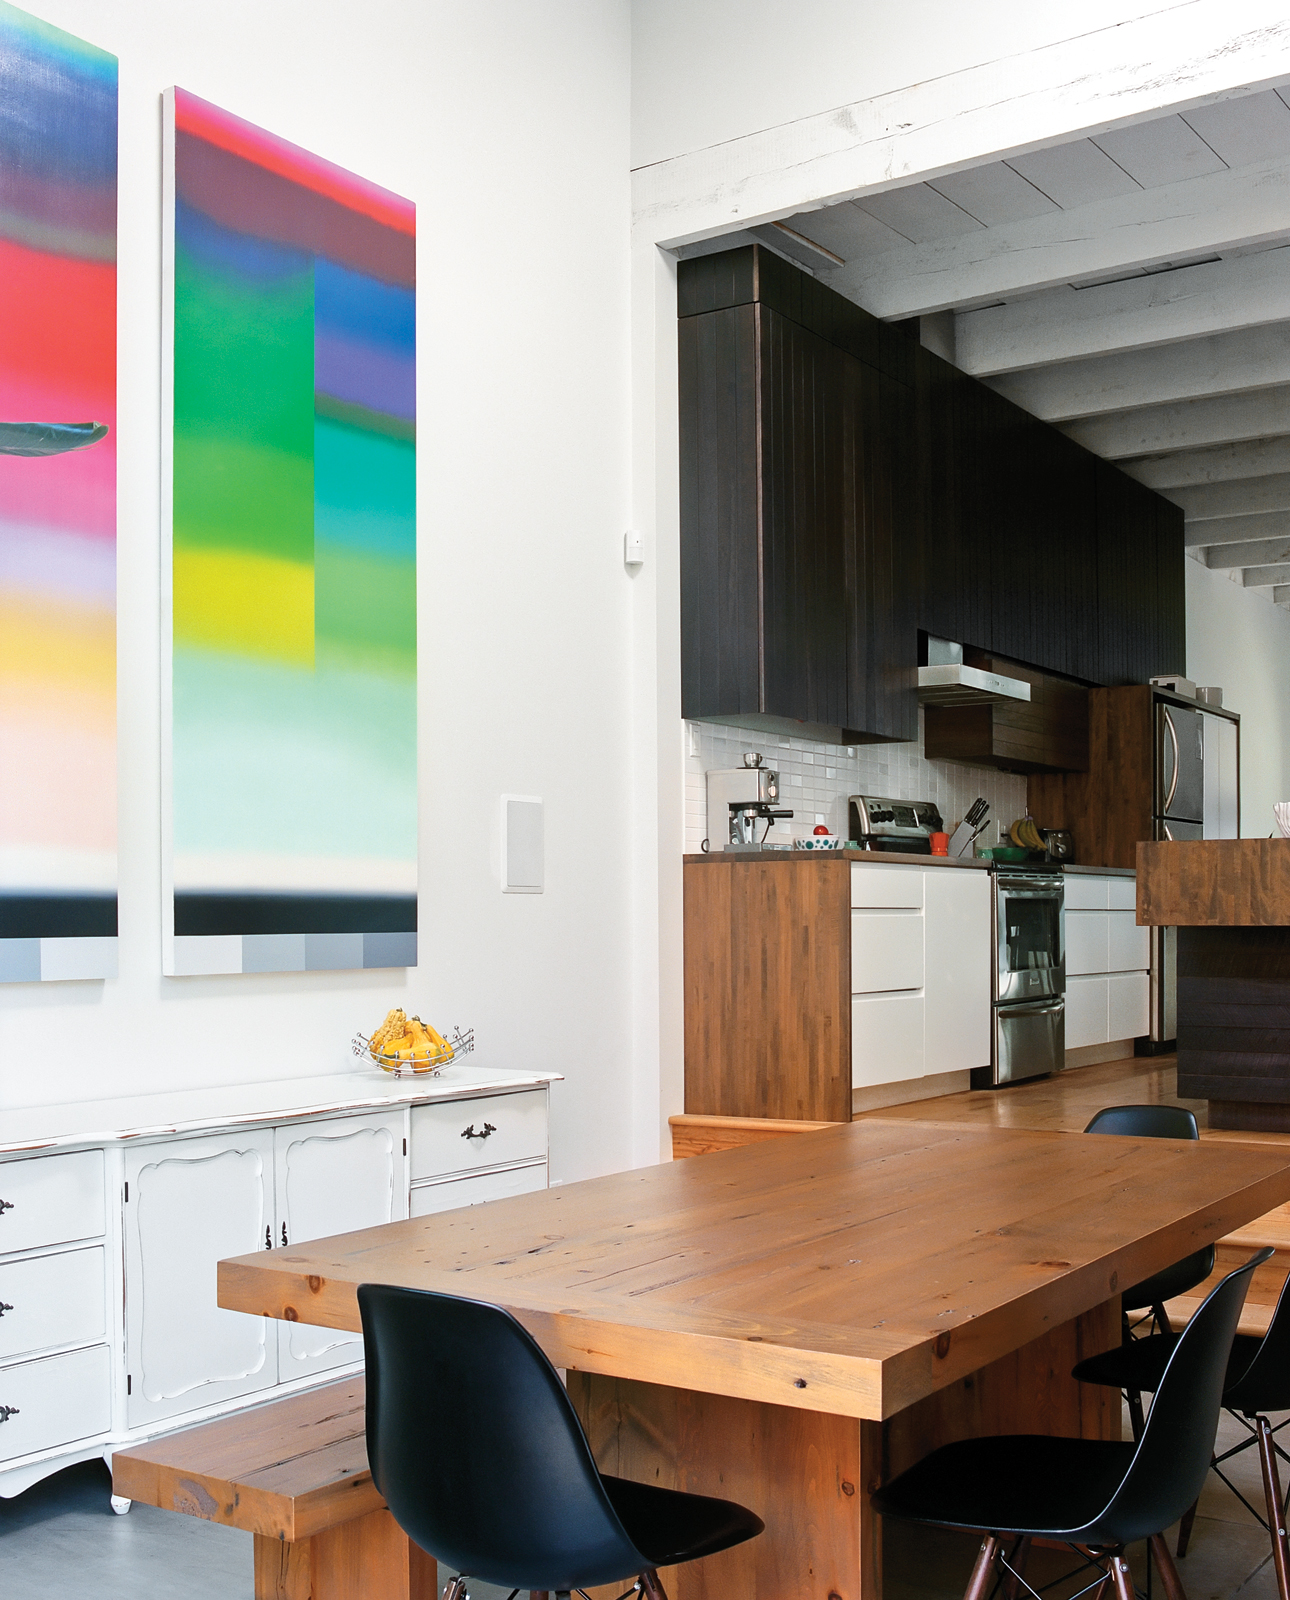 Minimalist dining area kitchen with colorful wall art